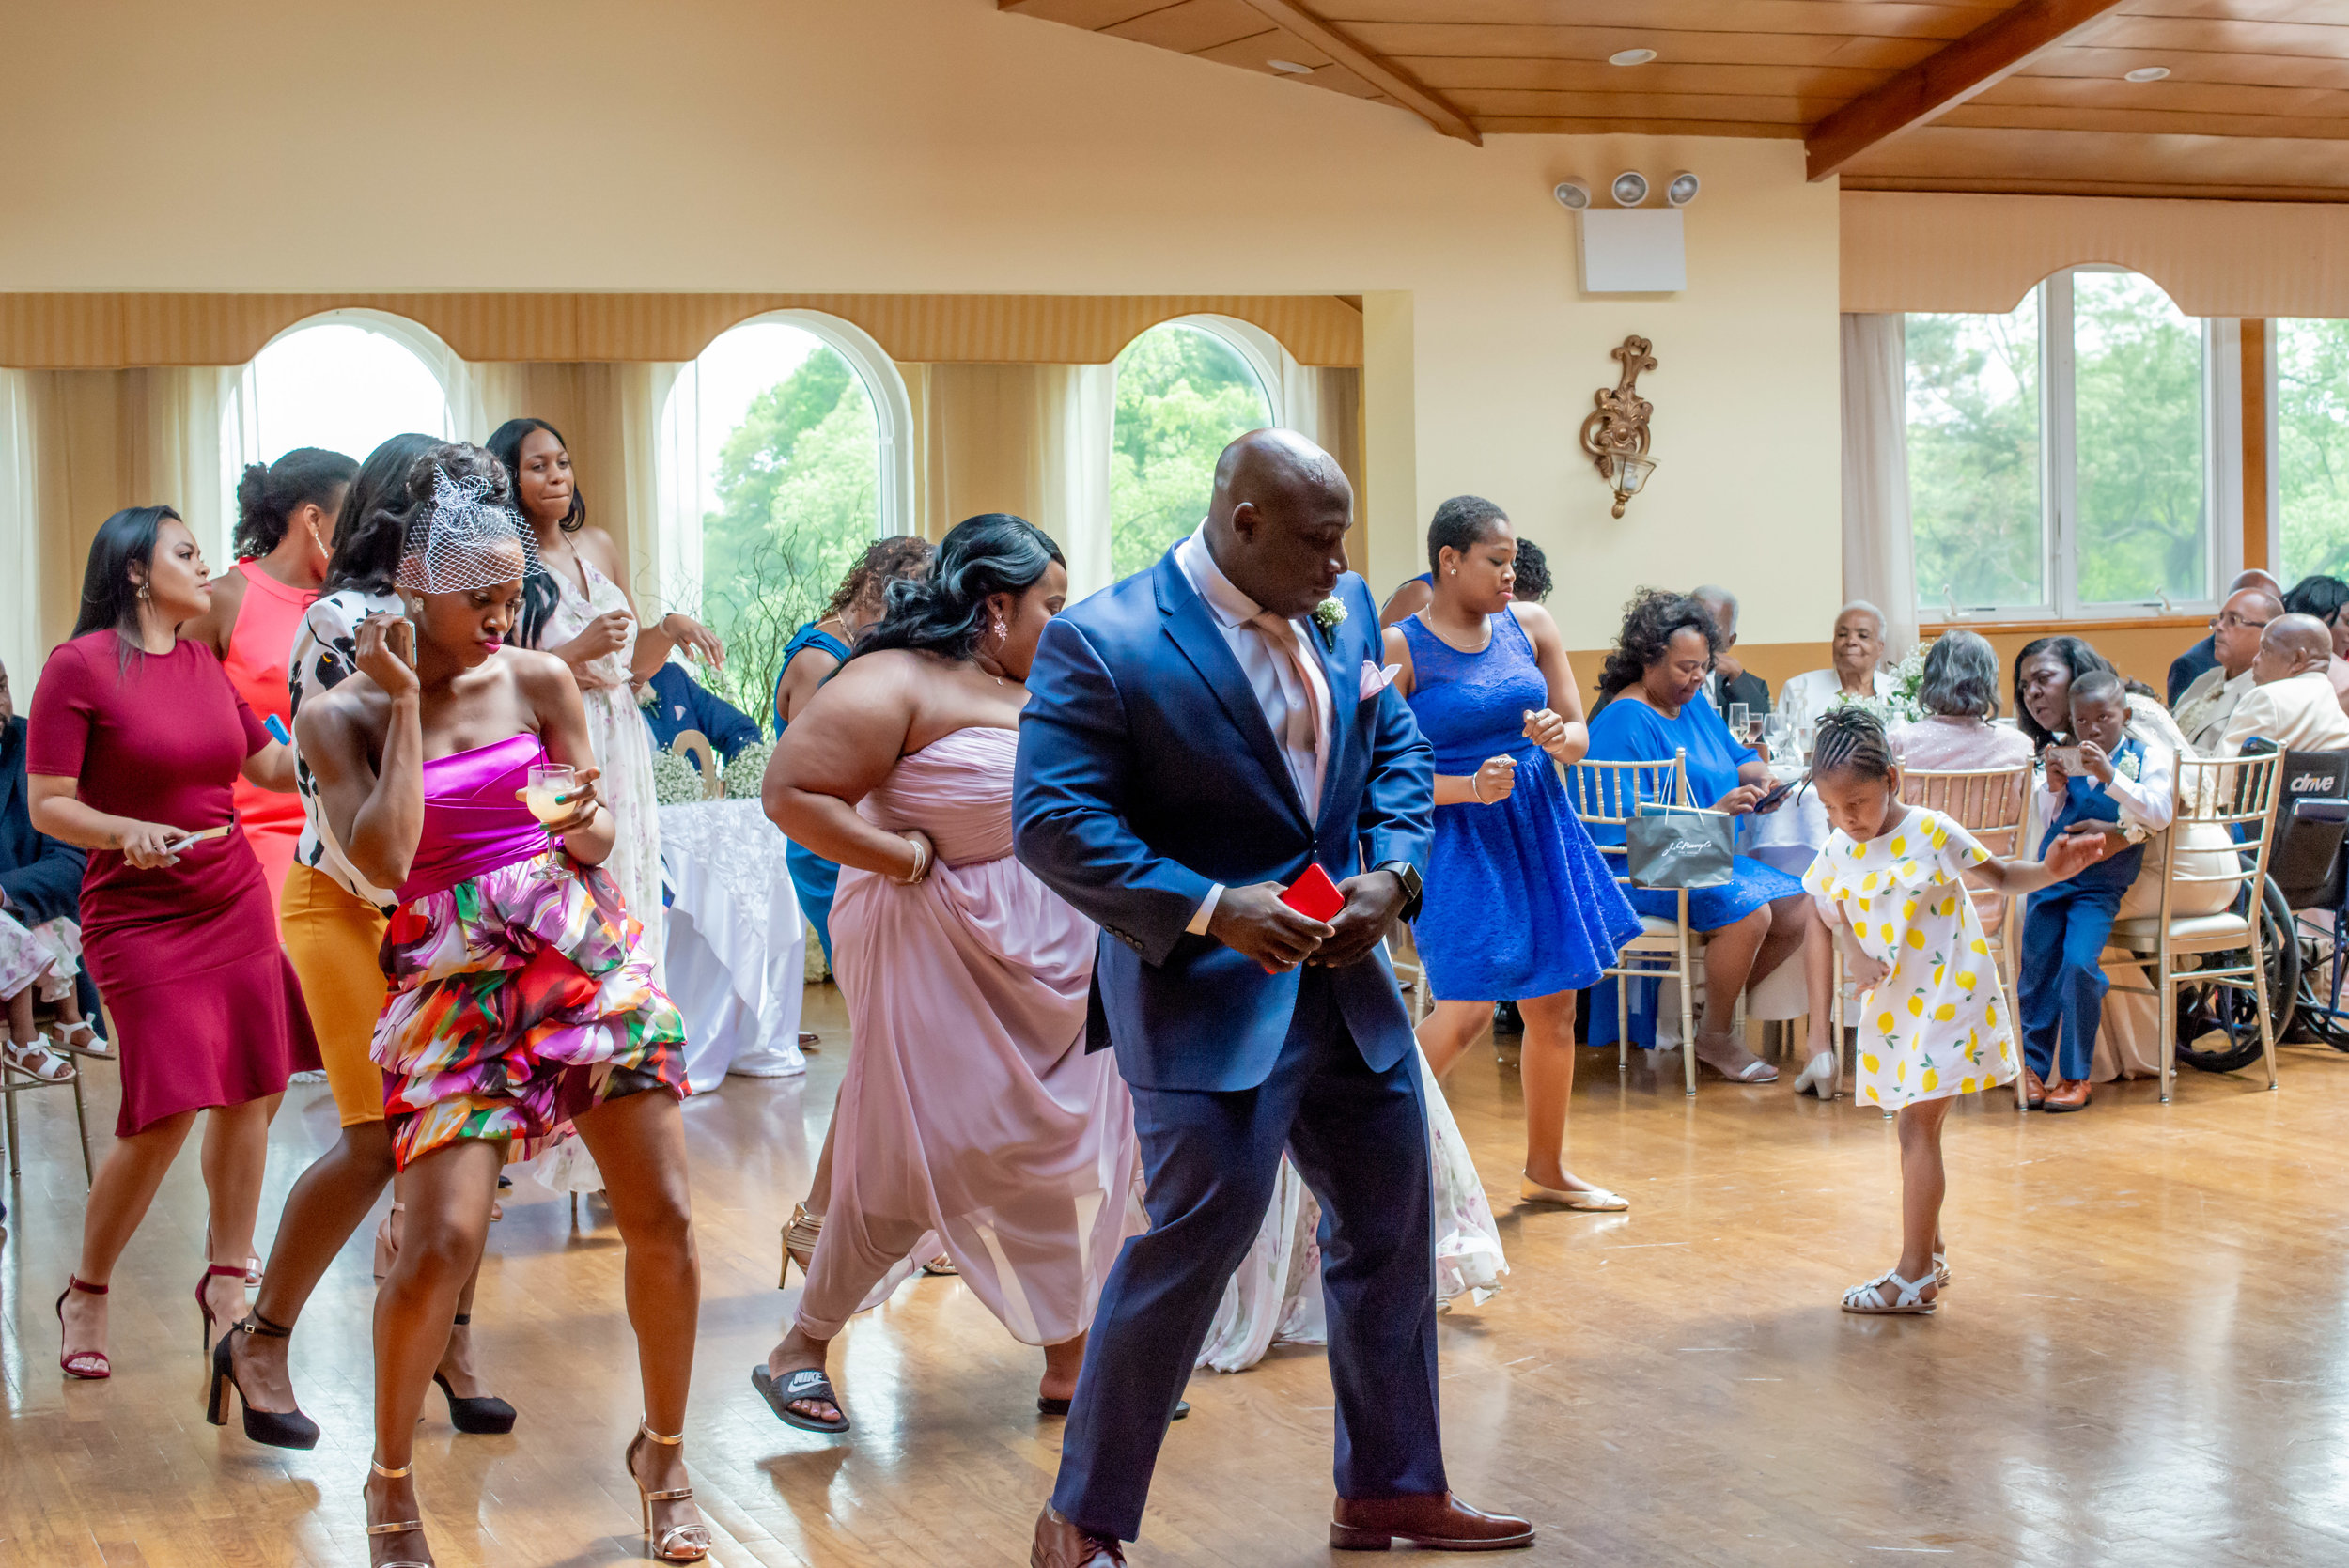 Douglaston Manor Wedding Guests dancing at reception